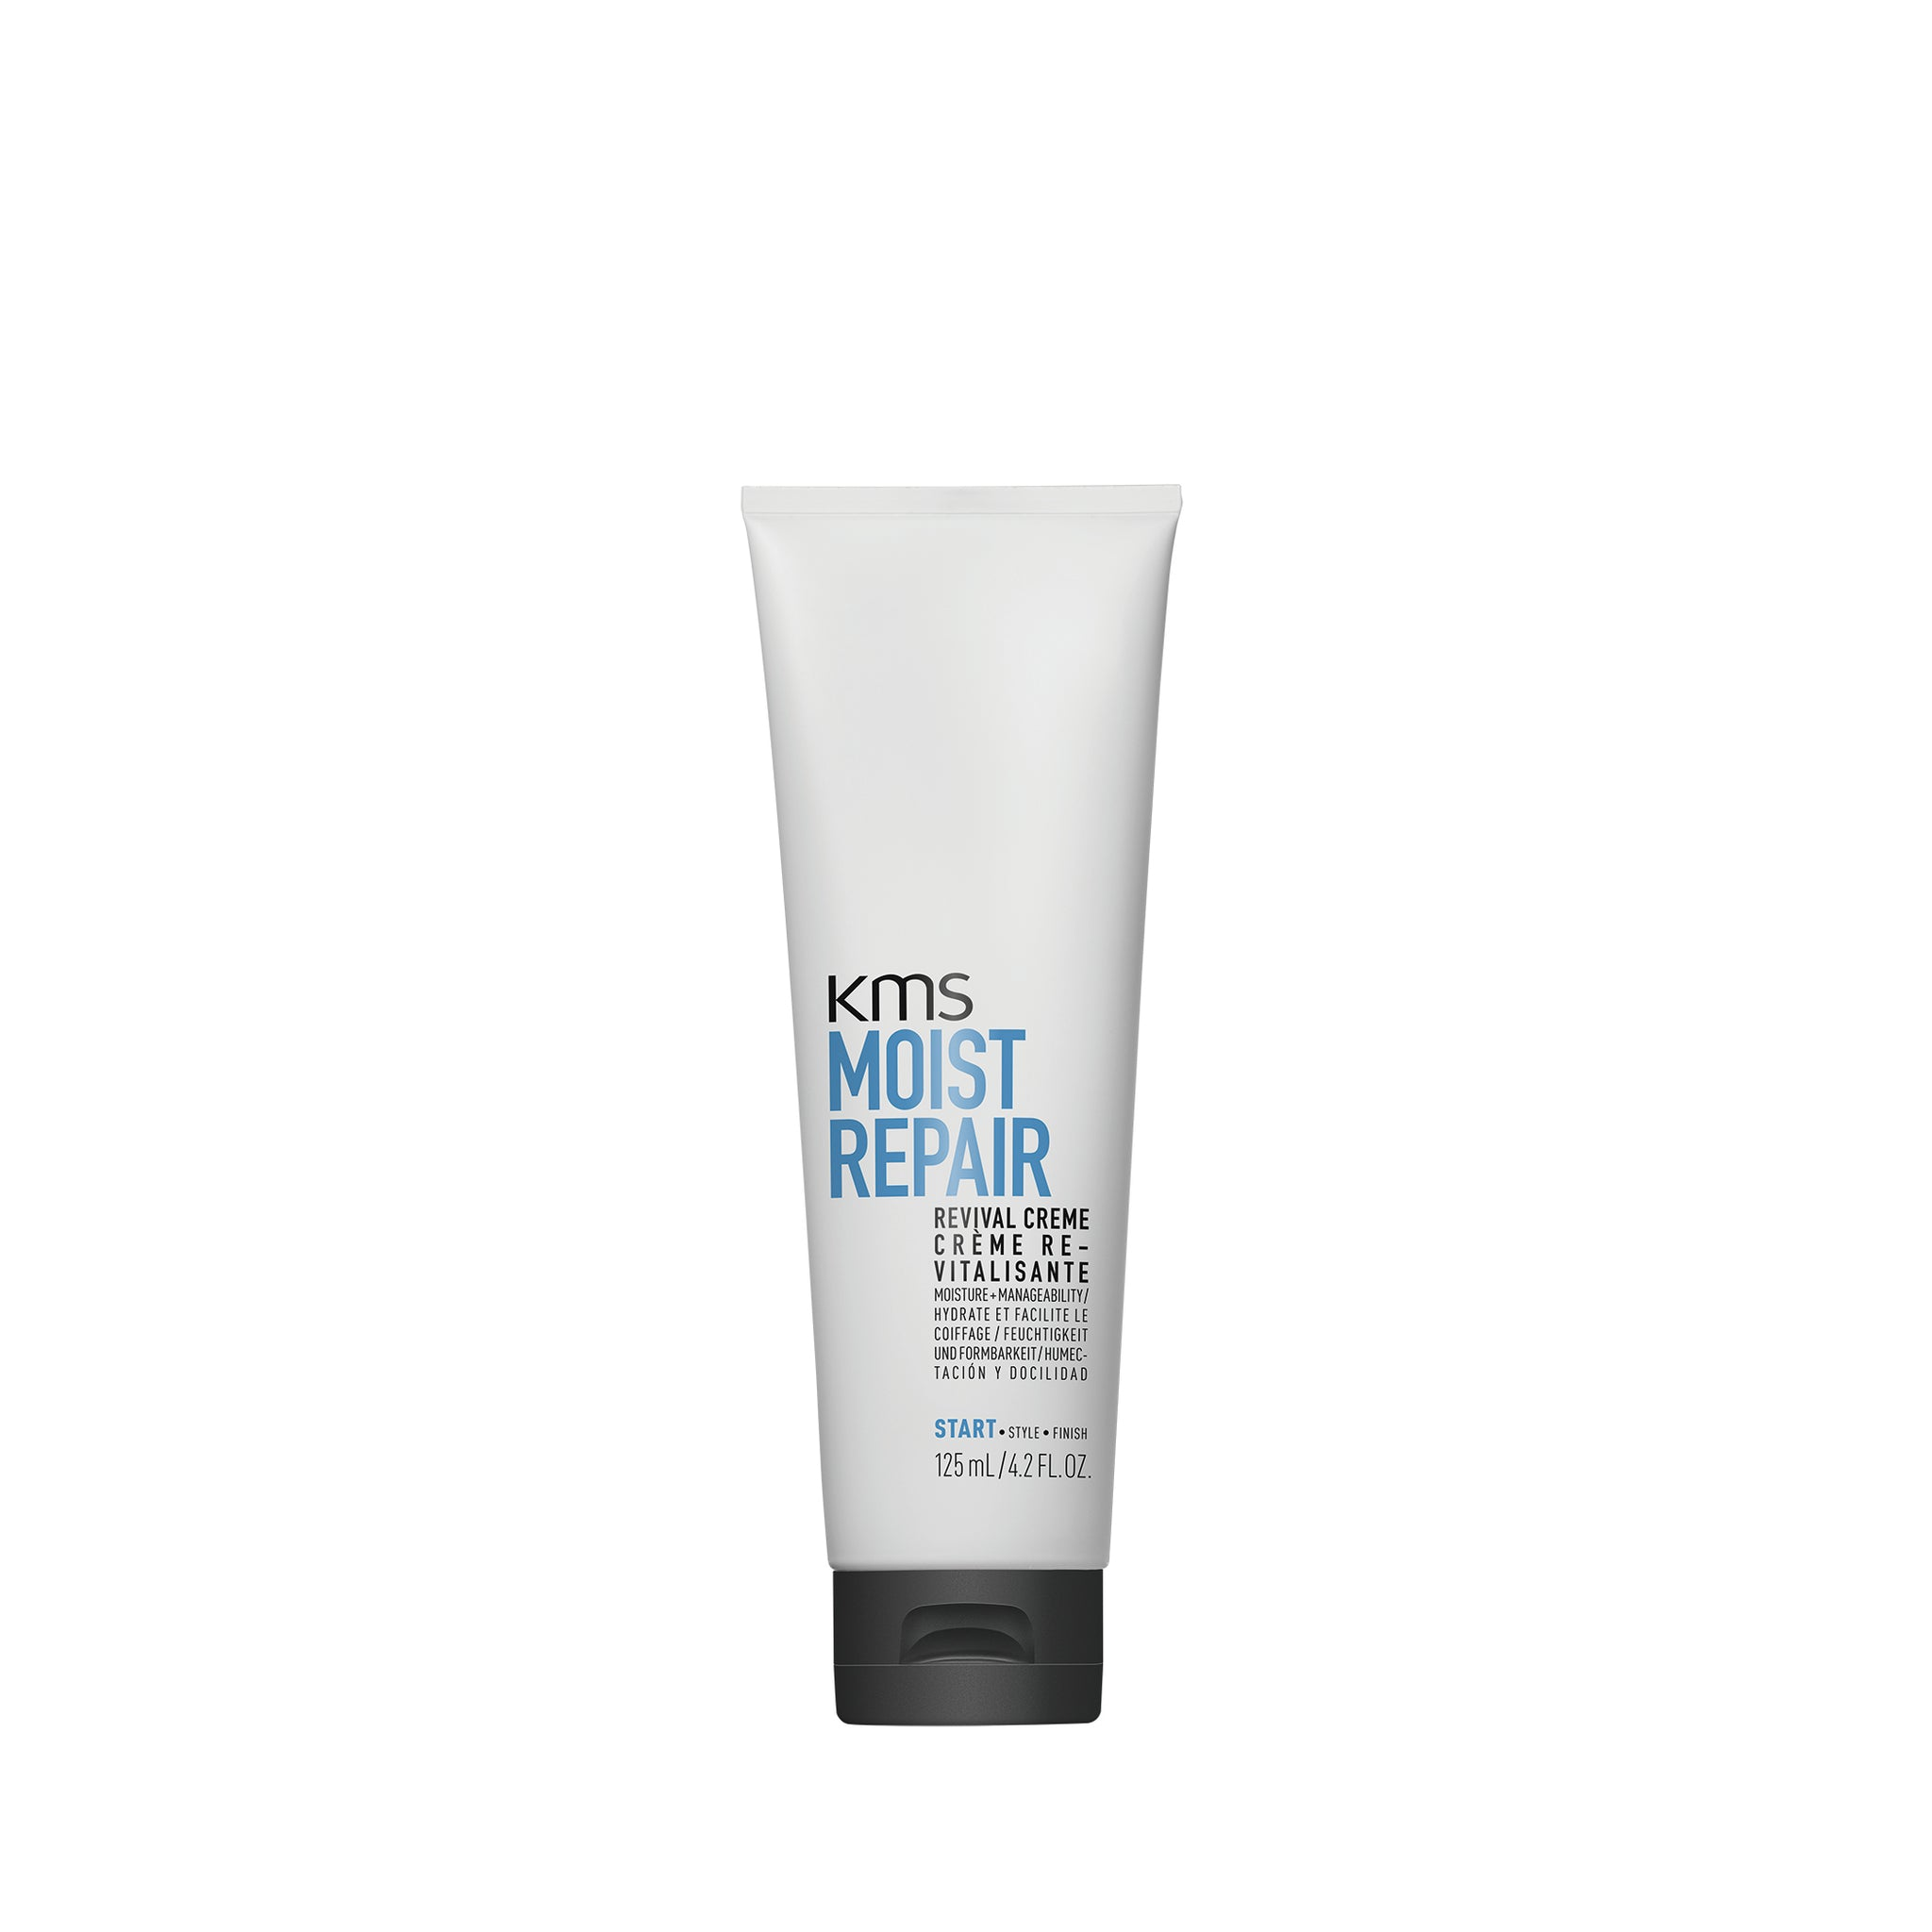 Moist repair Revival Creme.  (125 ml)